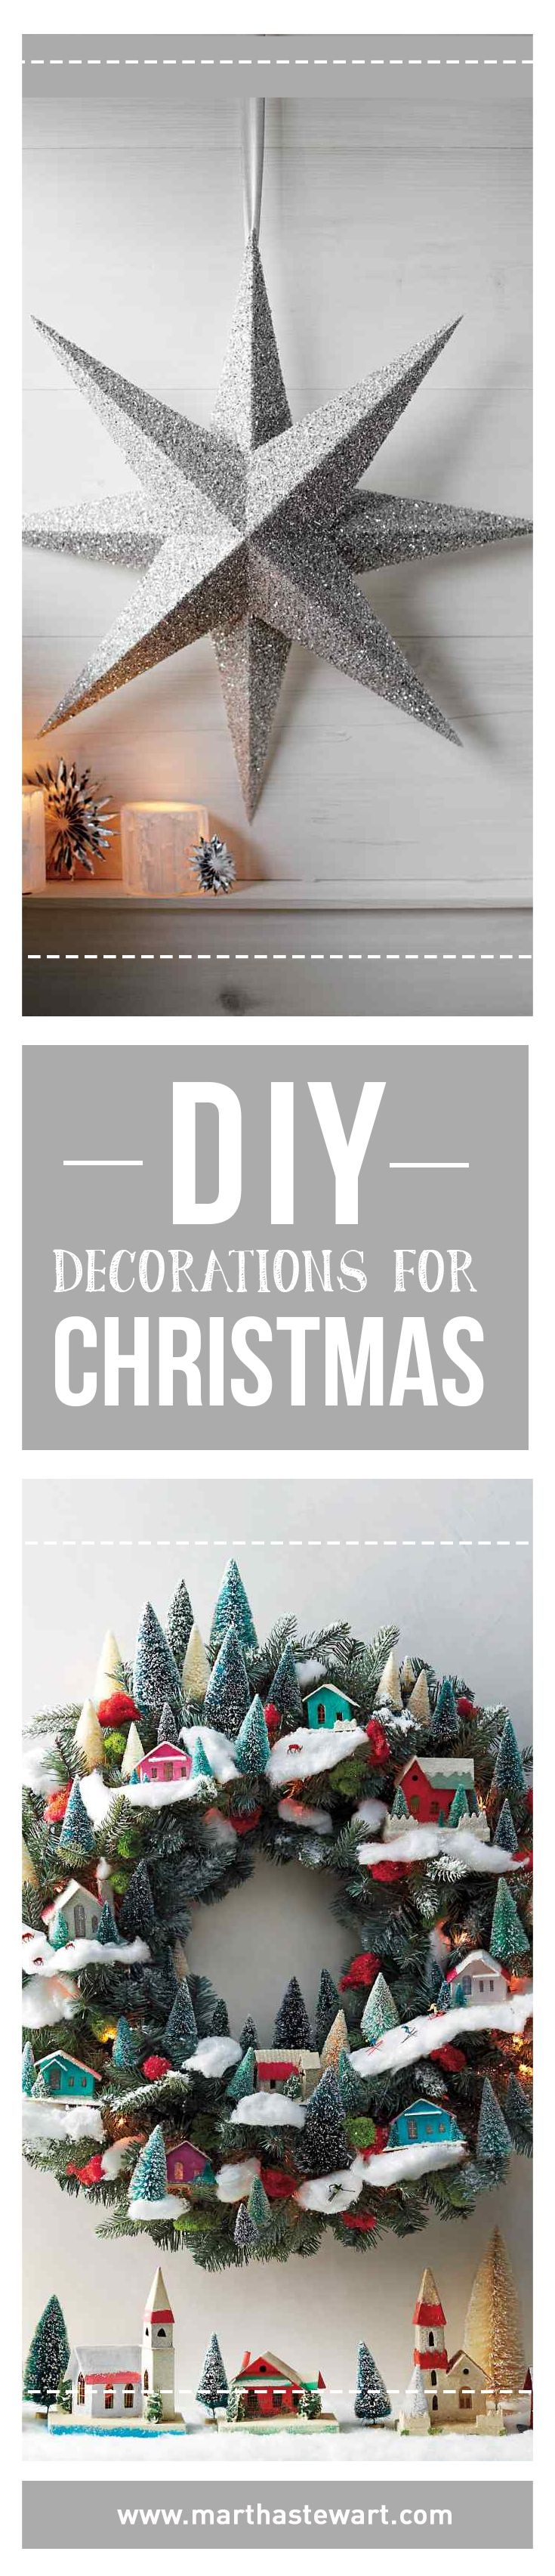 Deck The Halls Diy Decorations For Christmas Home Deck